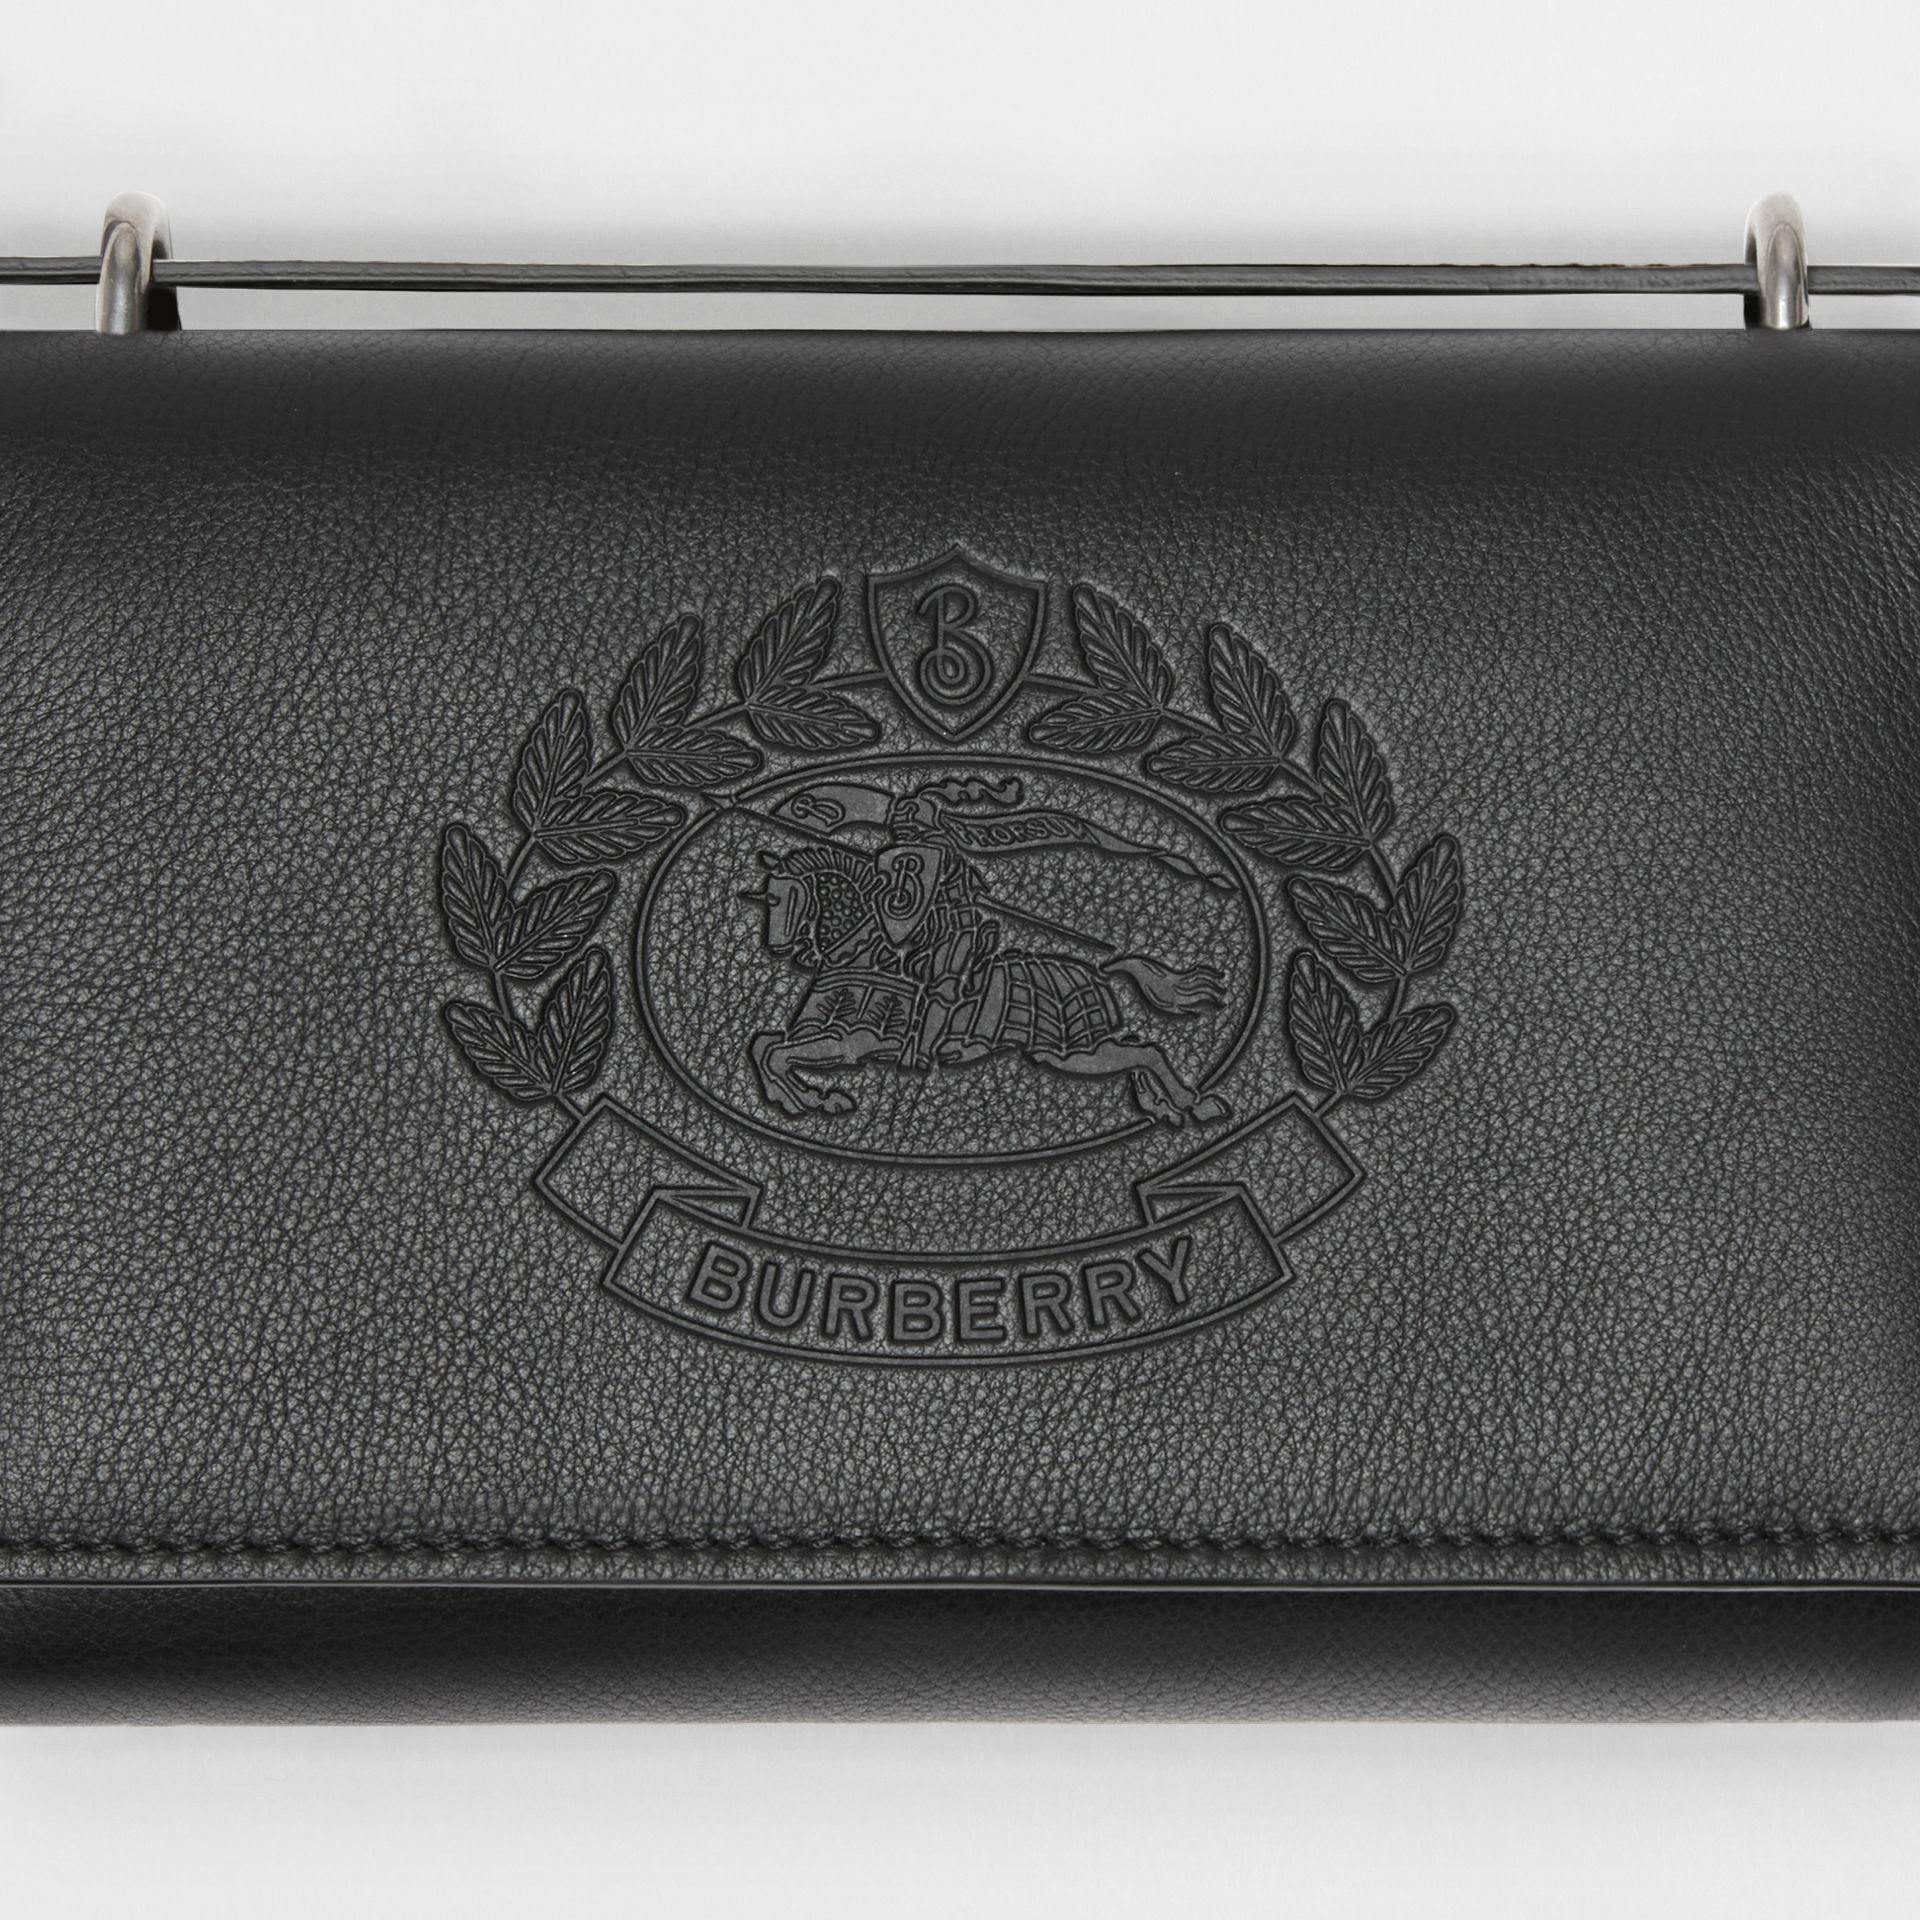 Embossed Crest Leather Wallet with Detachable Strap in Black - Women | Burberry - gallery image 1